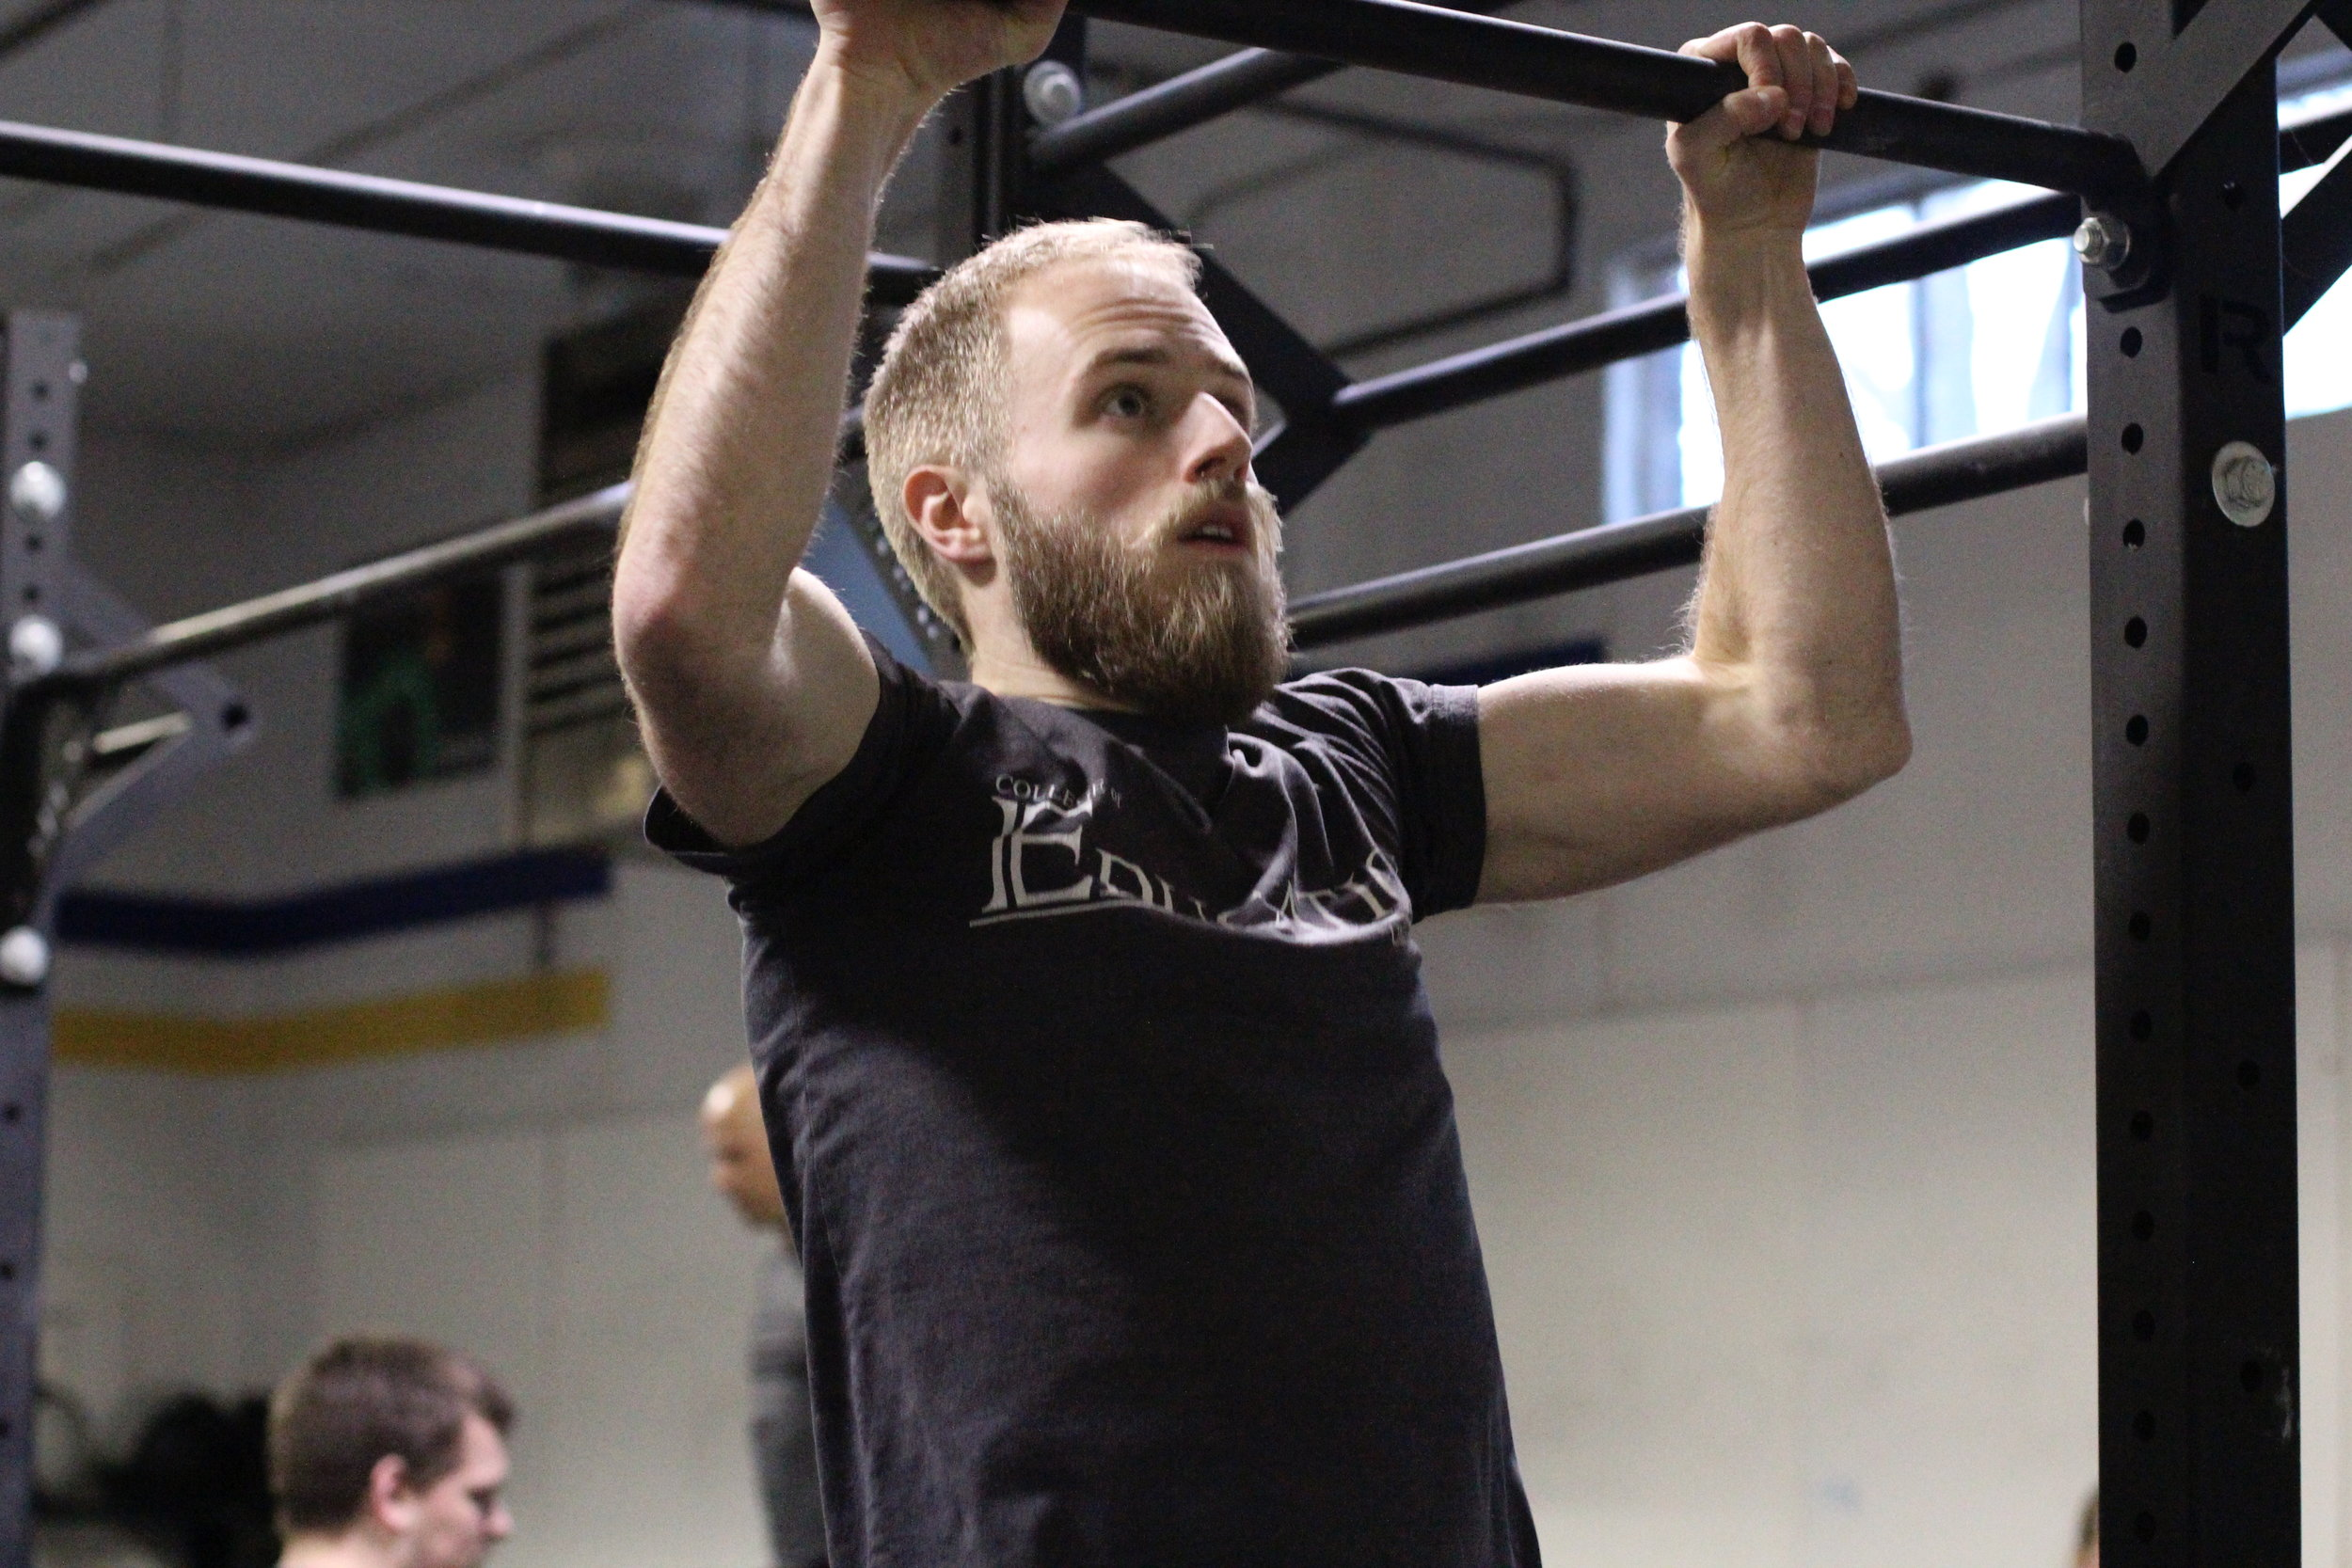 PVCF athlete, Jacob Brownell stays focused during a set of pull ups! Awesome job!